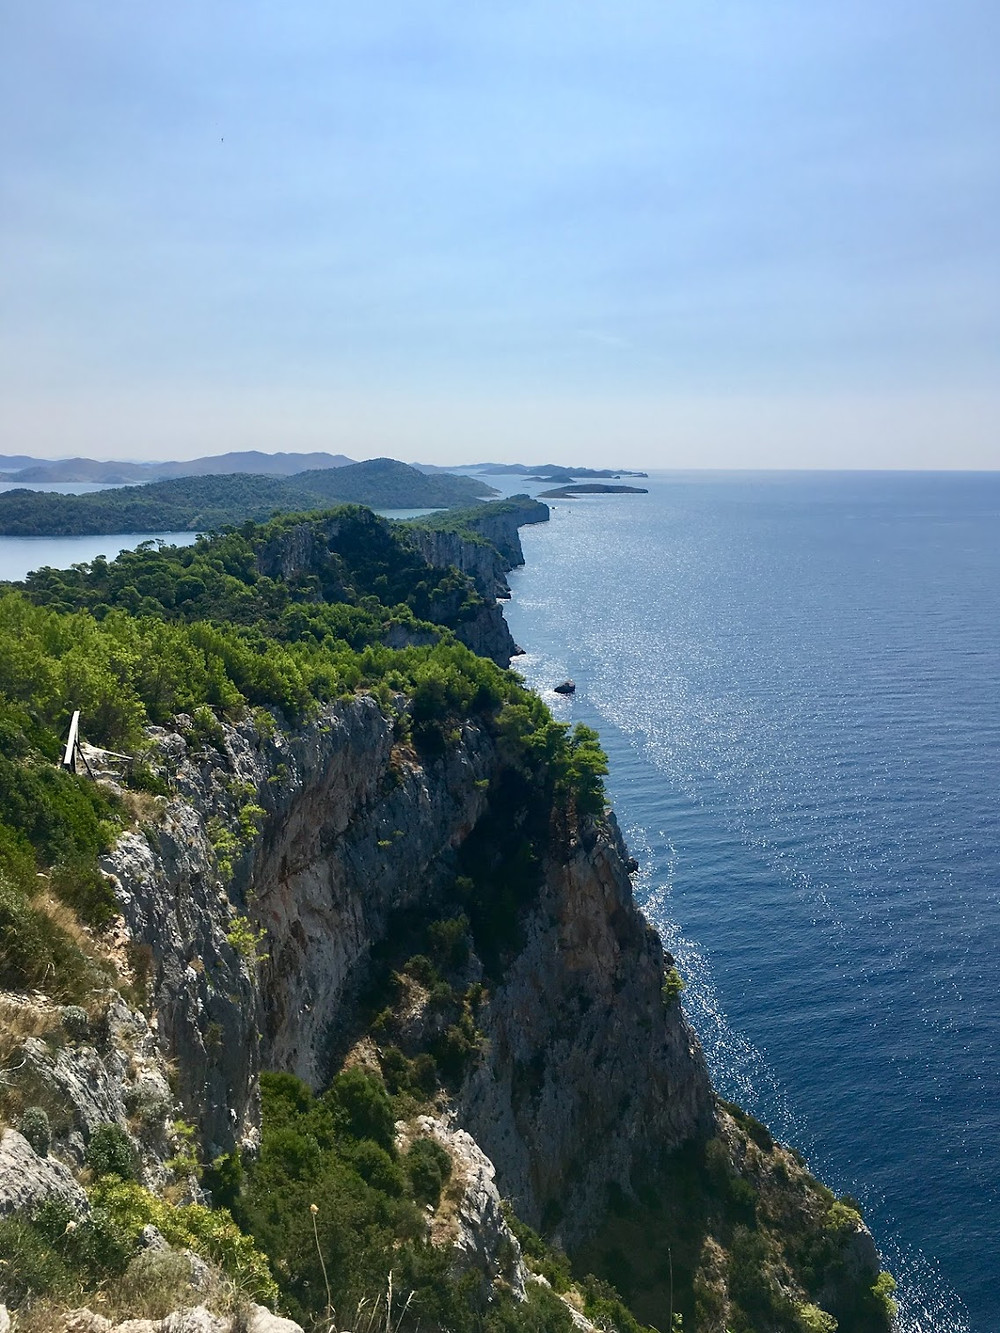 View from Fort Grpascak, Telascica, Dugi Otok